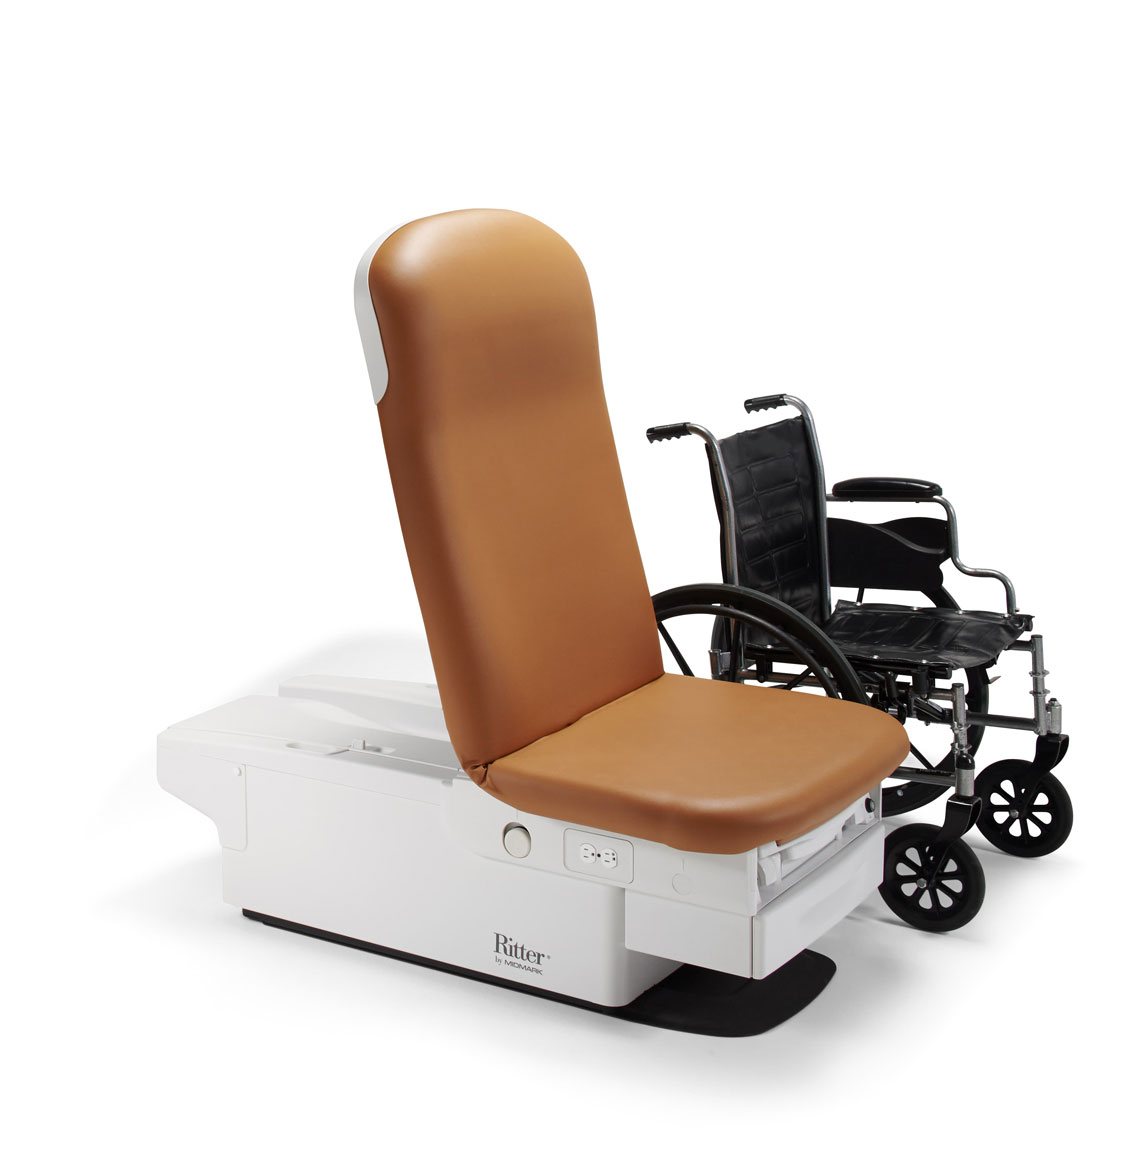 Ritter 225 Barrier-Free Examination Chair